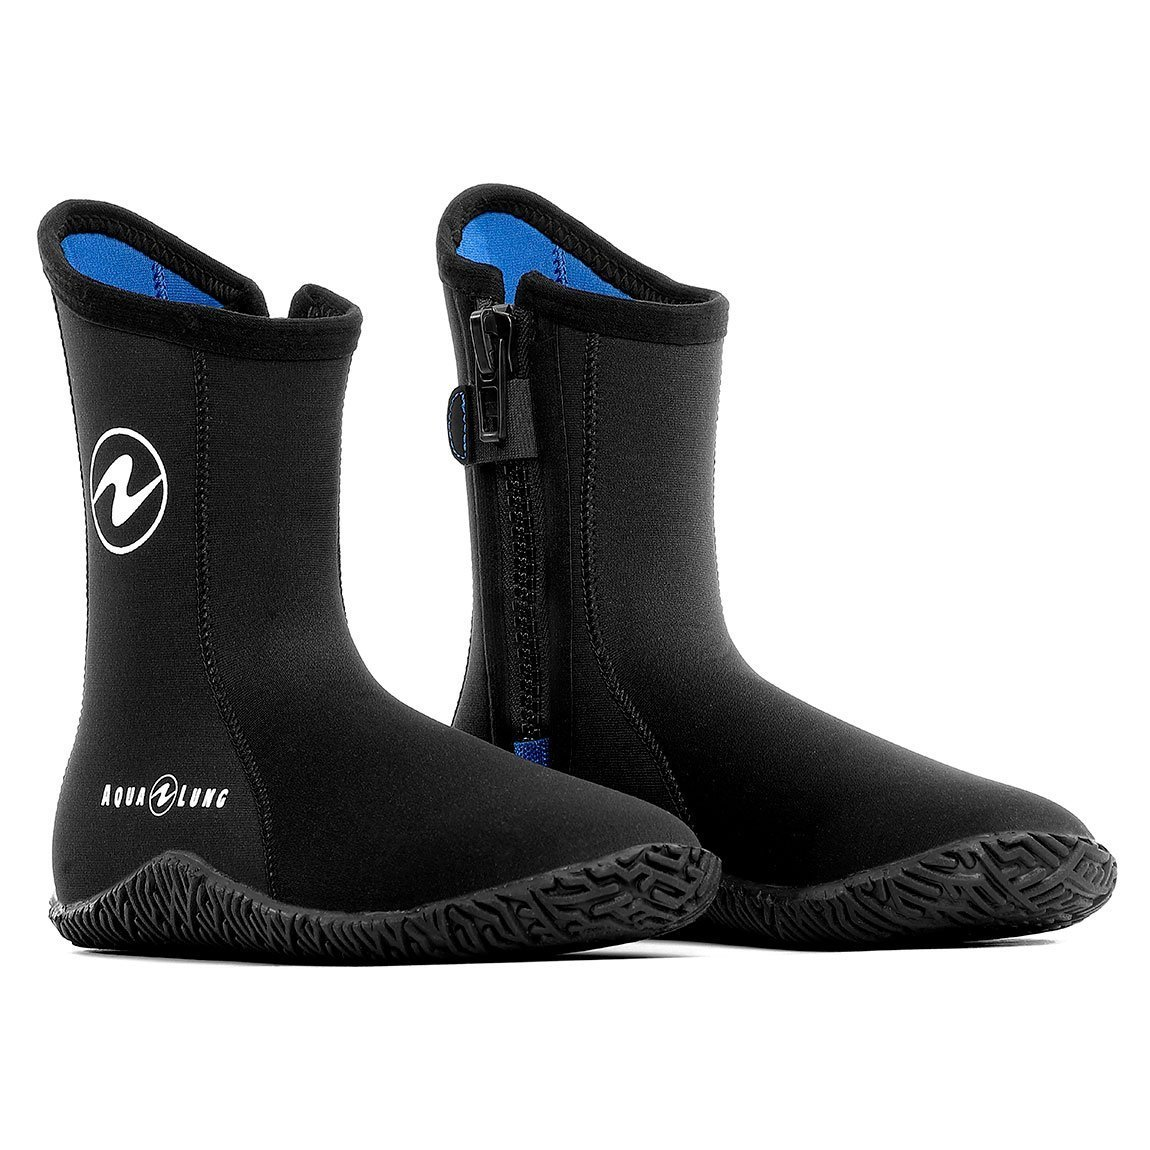 AQUALUNG SUPERL0W, BOOTS 3MM (NEW 2020)